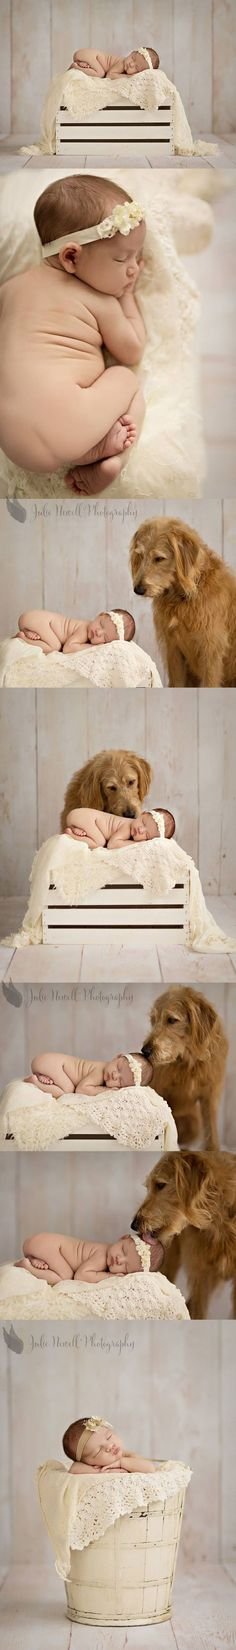 newborn photography - Tap the pin for the most adorable pawtastic fur baby apparel! You'll love the dog clothes and cat clothes! #ParentingPhotography